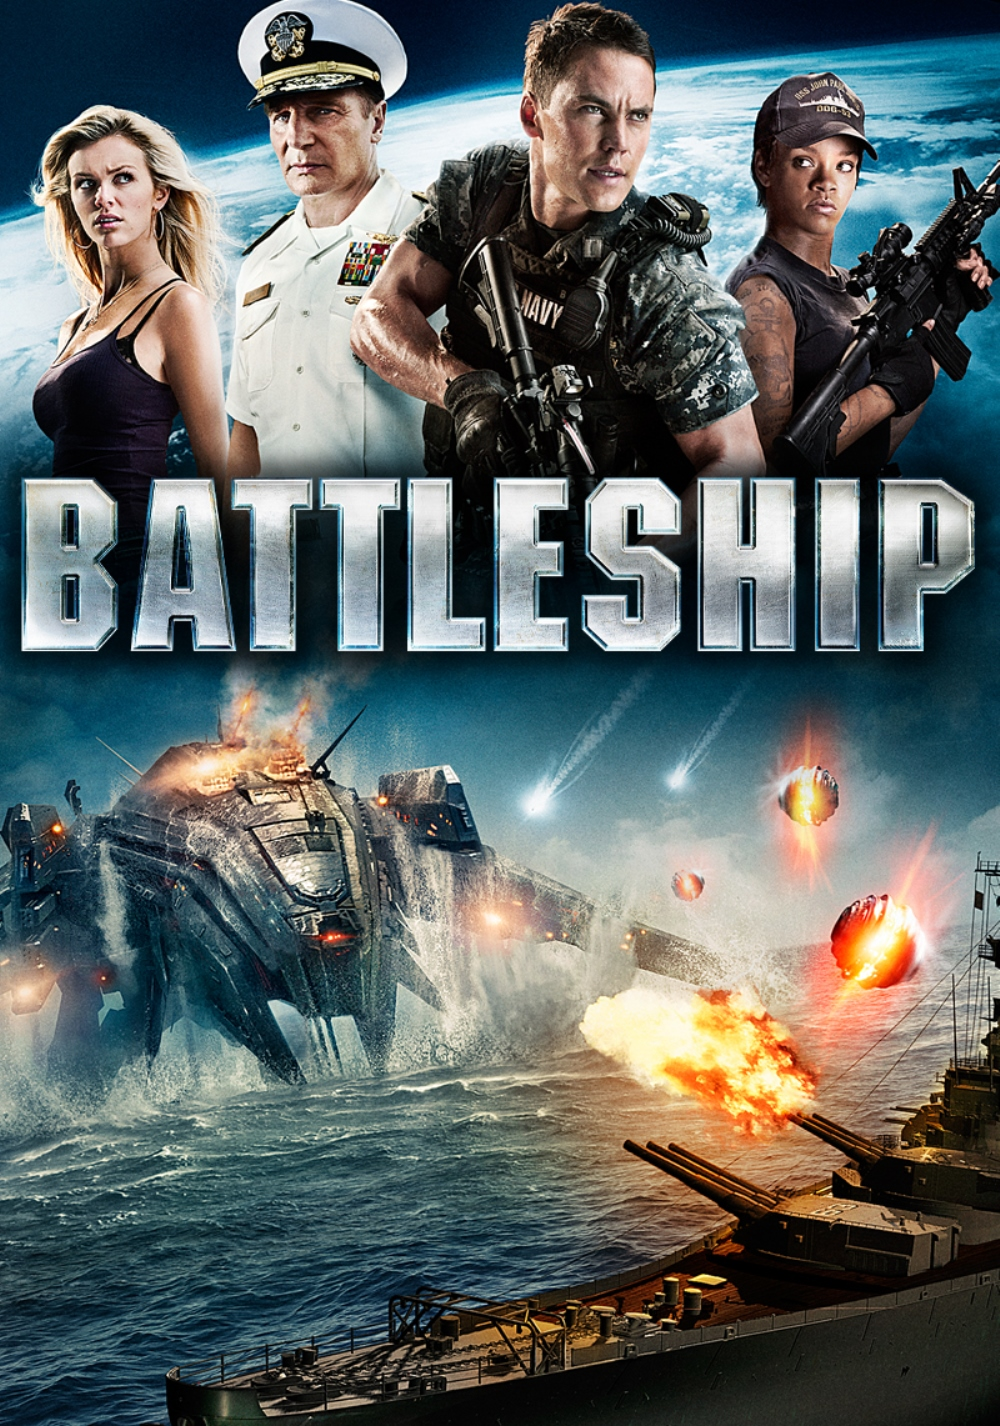 BATTLESHIP (2012) TAMIL DUBBED HD